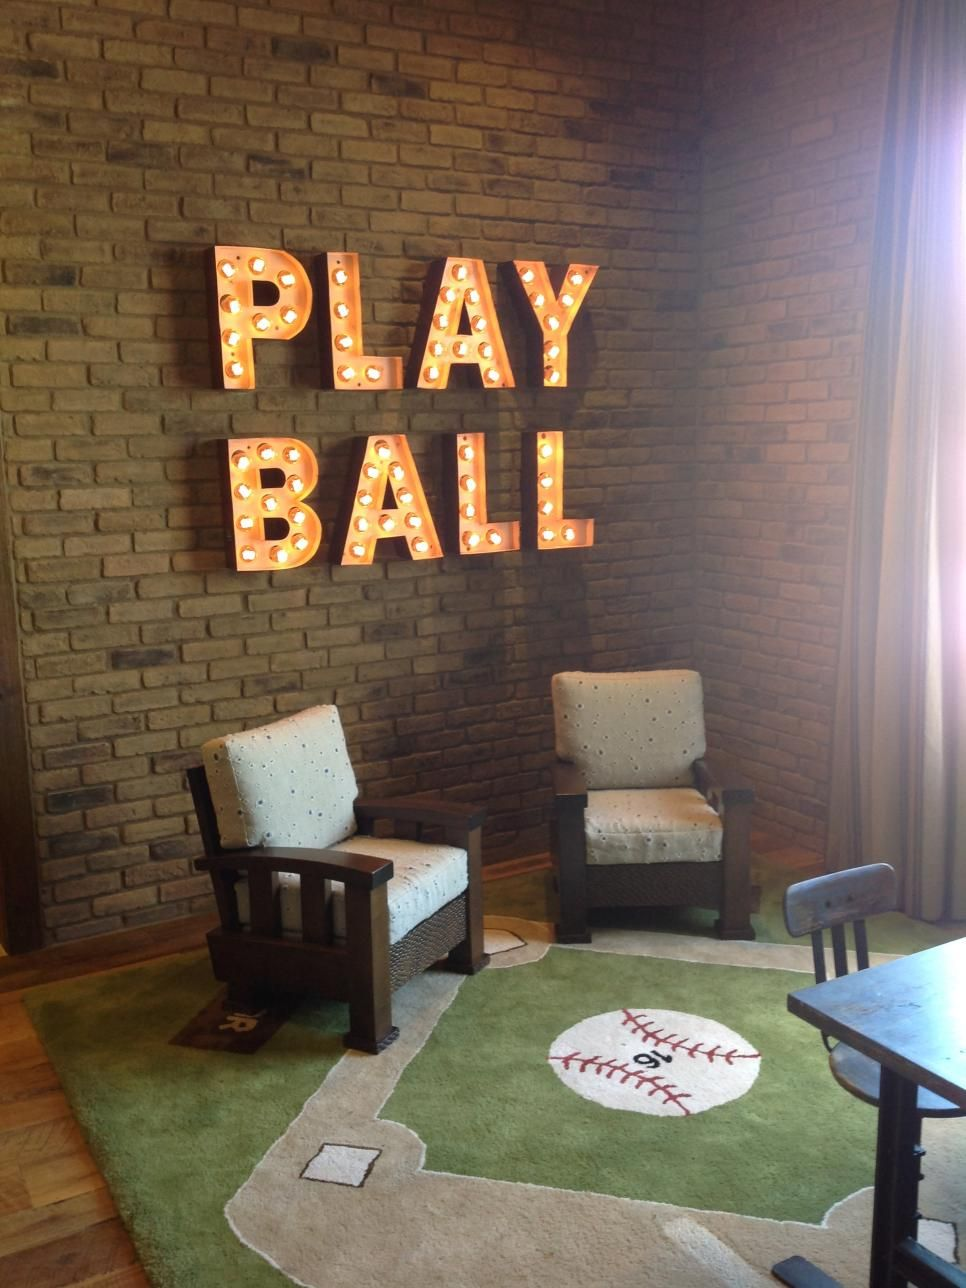 The Game Is On In This Fun Playroom That Features A Baseball